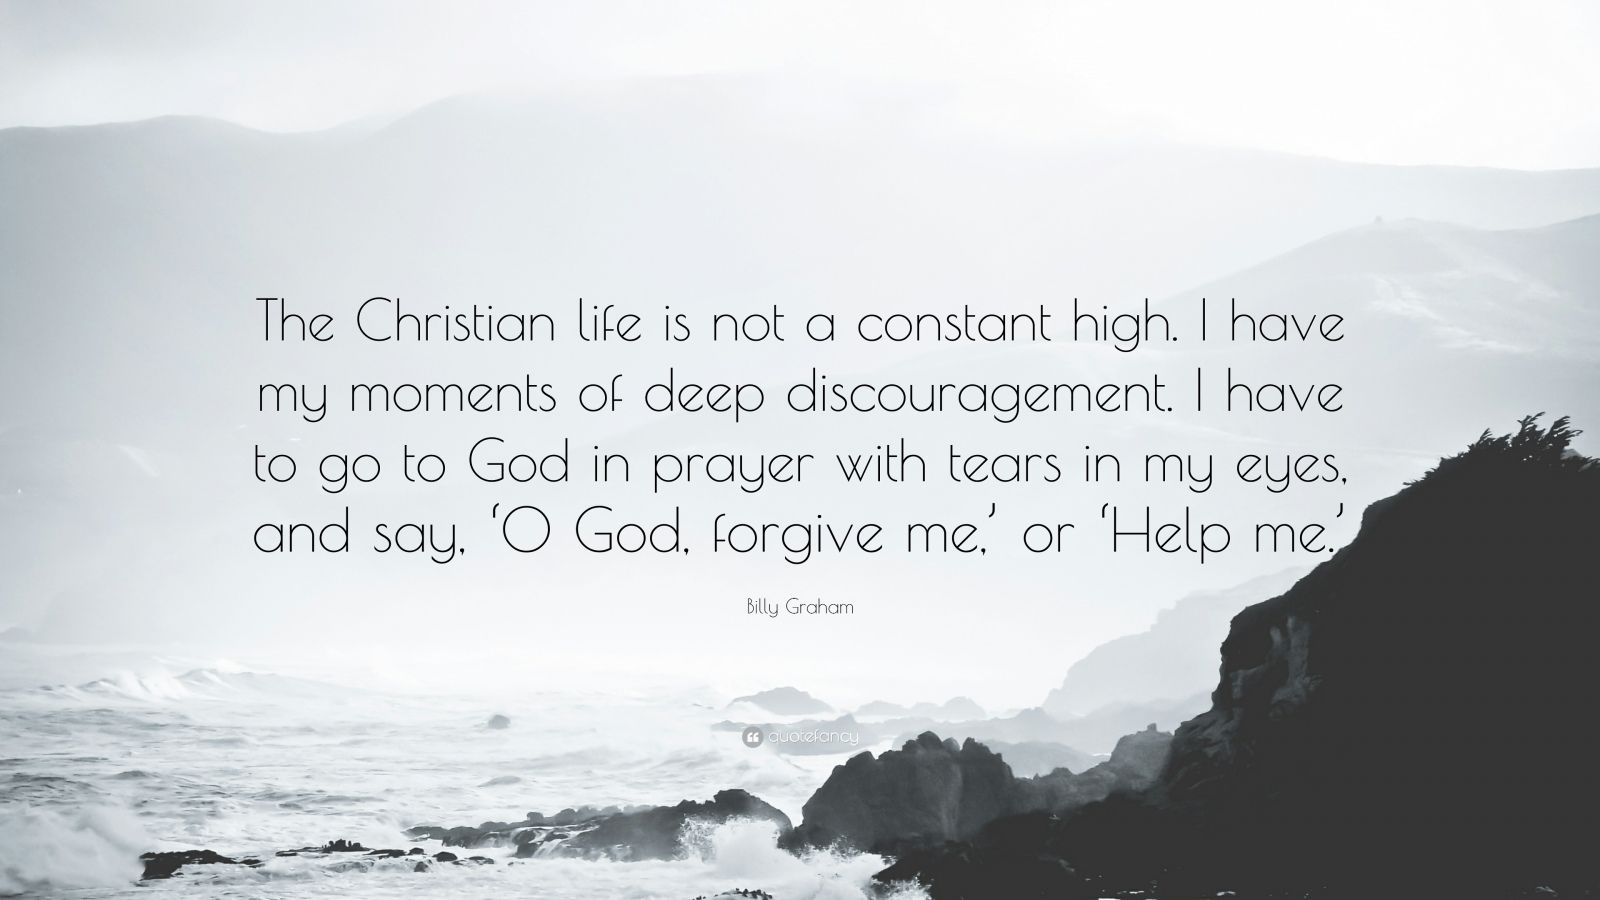 """Billy Graham Quote: """"The Christian life is not a constant high. I have my moments of deep discouragement. I have to go to God in prayer with tears in my eyes, and say, 'O God, forgive me,' or 'Help me.'"""""""